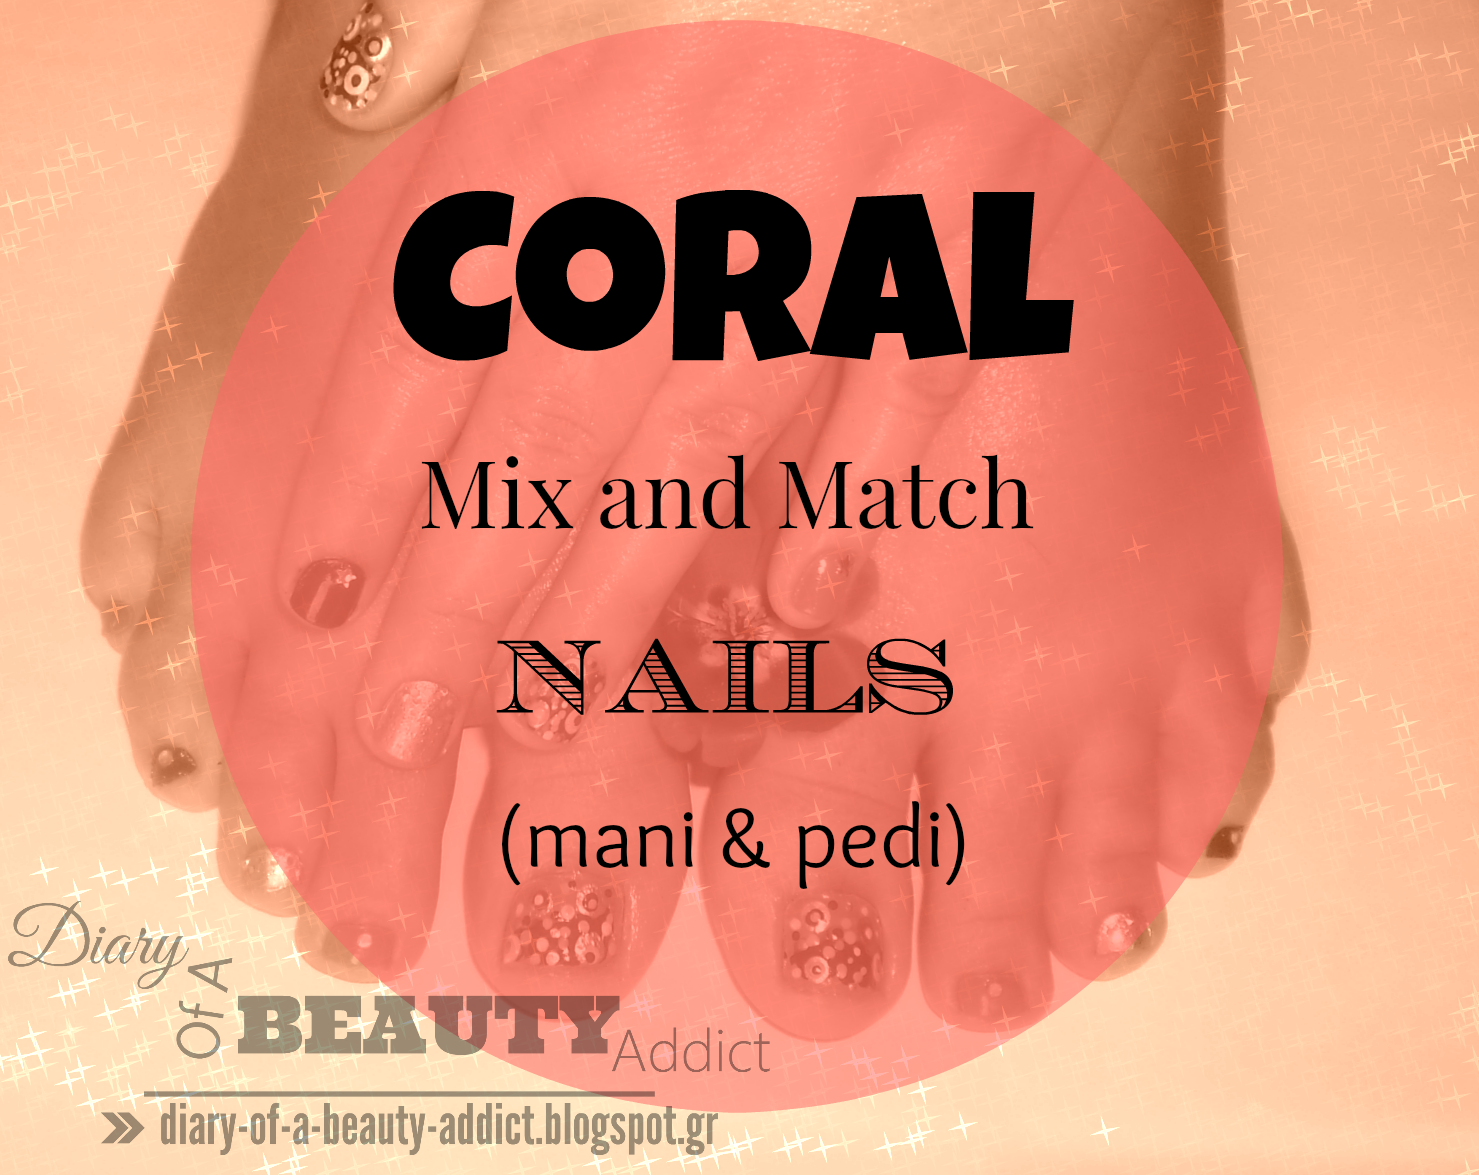 Coral Mix and Match Nails(mani & pedi)